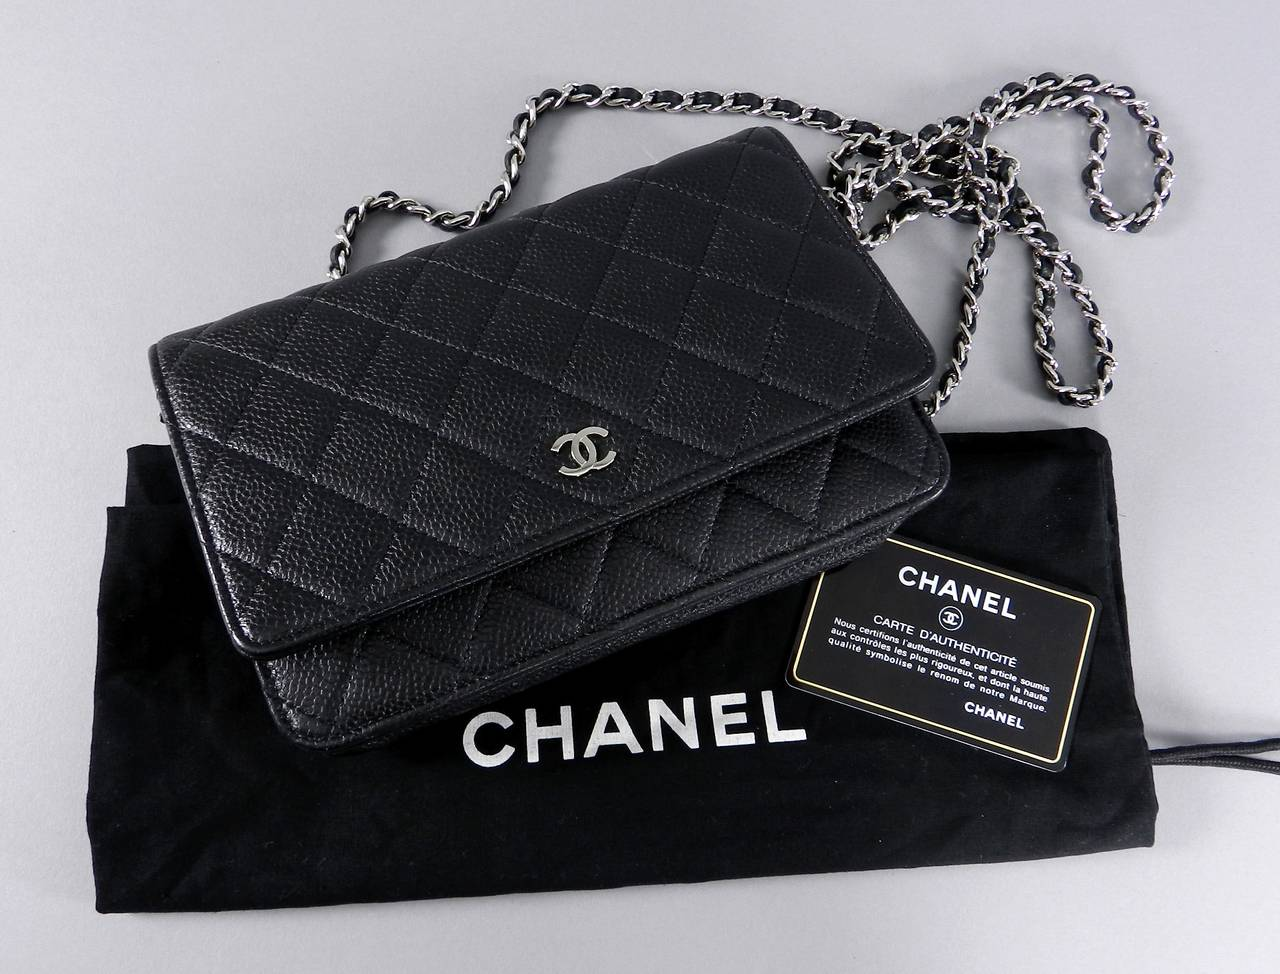 Chanel Black Caviar Leather Wallet On Chain With Silvertone Hardware Long Cross Body Strap